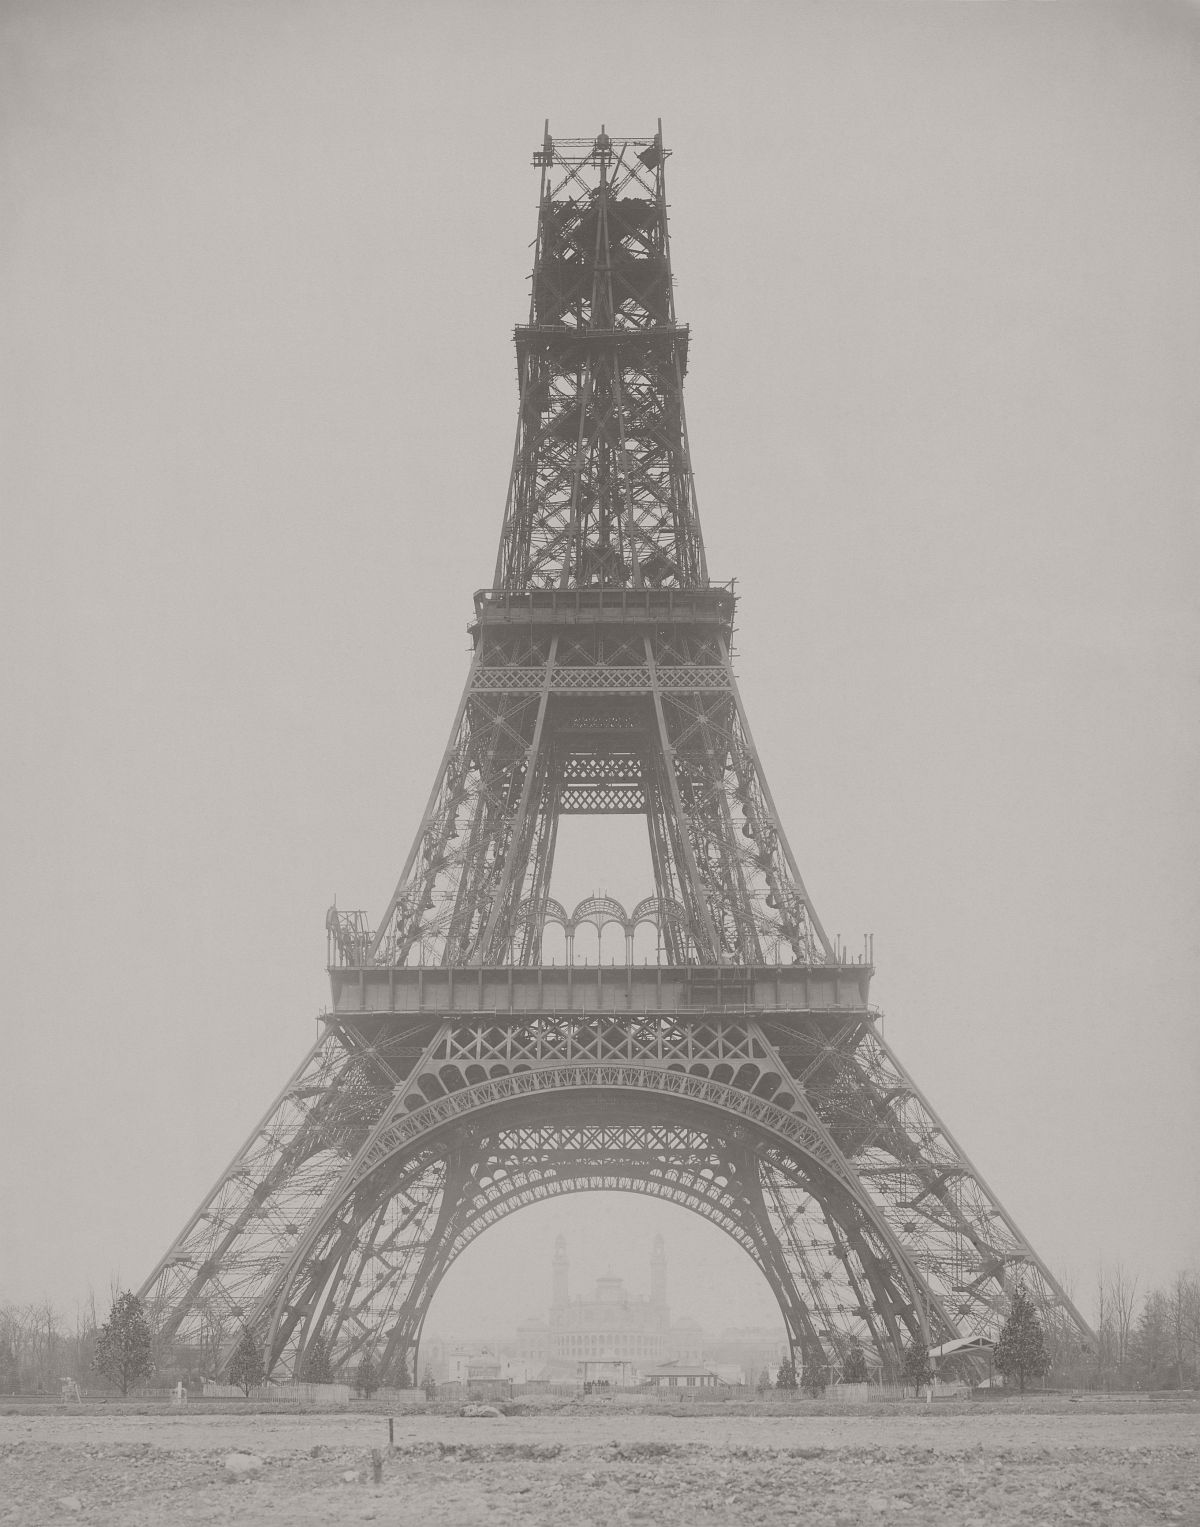 The Eiffel Tower: State of the Construction, Paris, France, November 23, 1888.